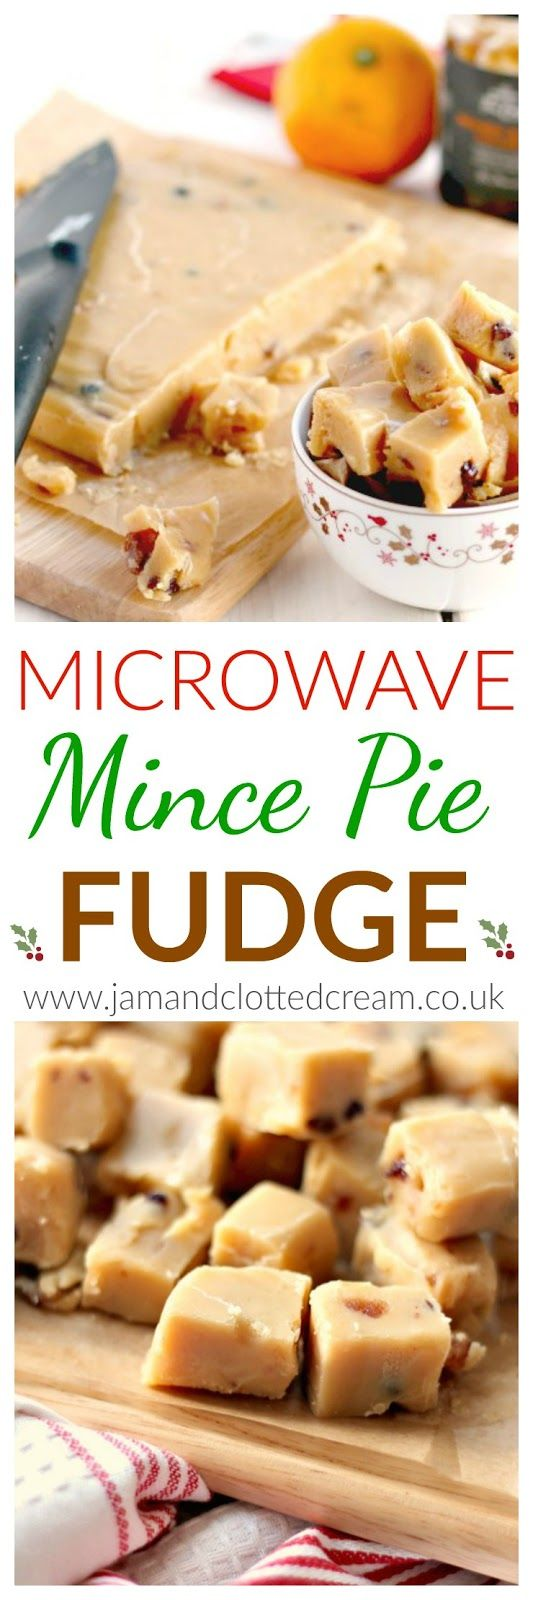 Microwave Mince Pie Fudge. I love all the recipes on this site. check out the slow cooker cabbage for xmas toooooo